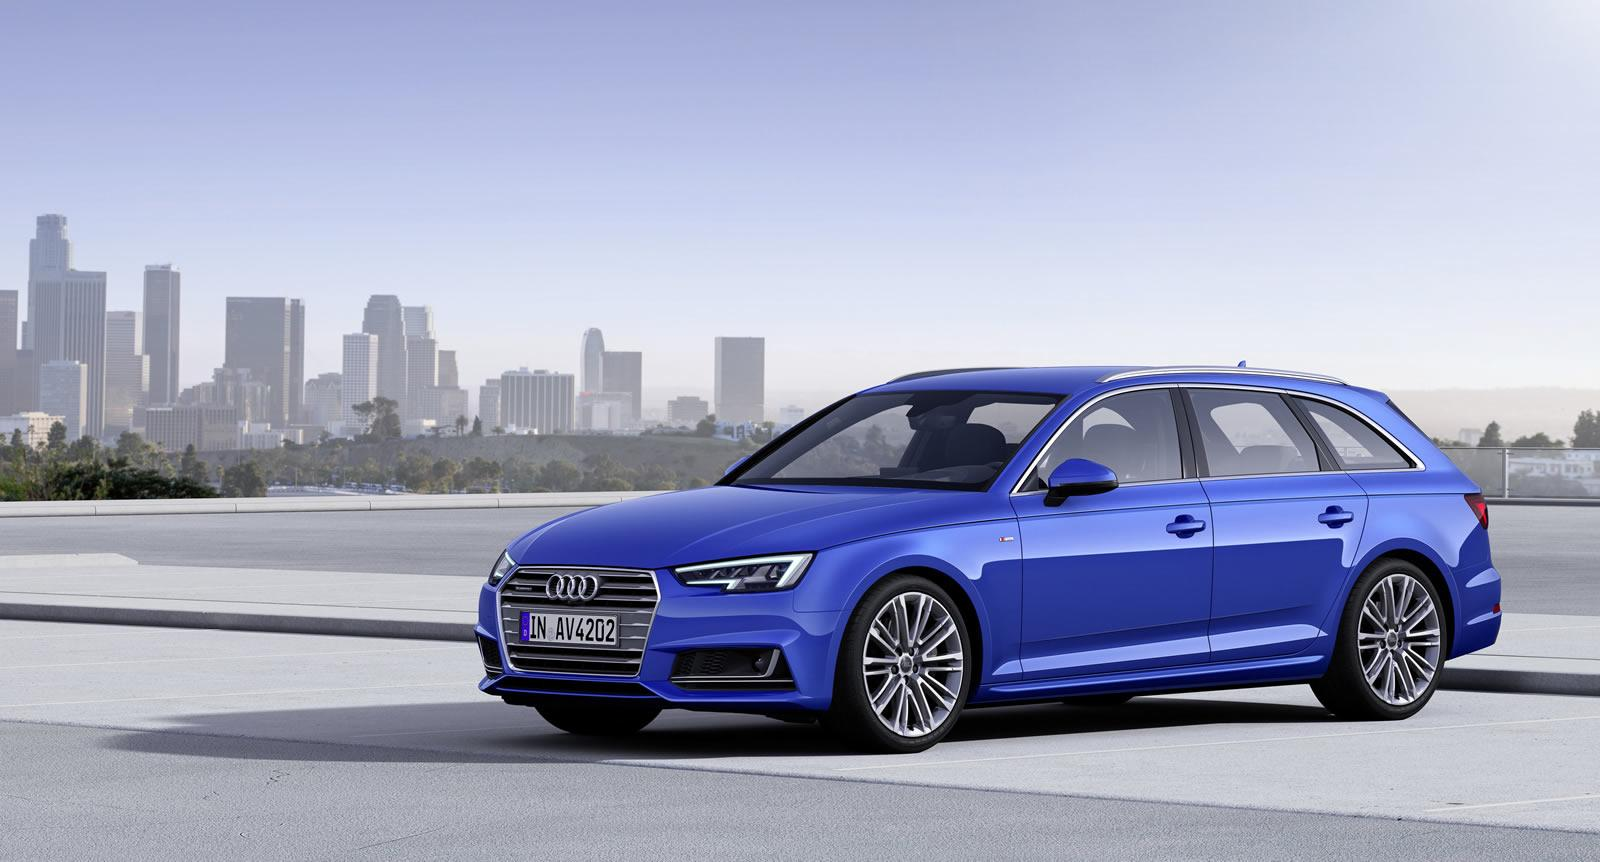 2016 Audi A4 Avant B9 Photos Videos And Details